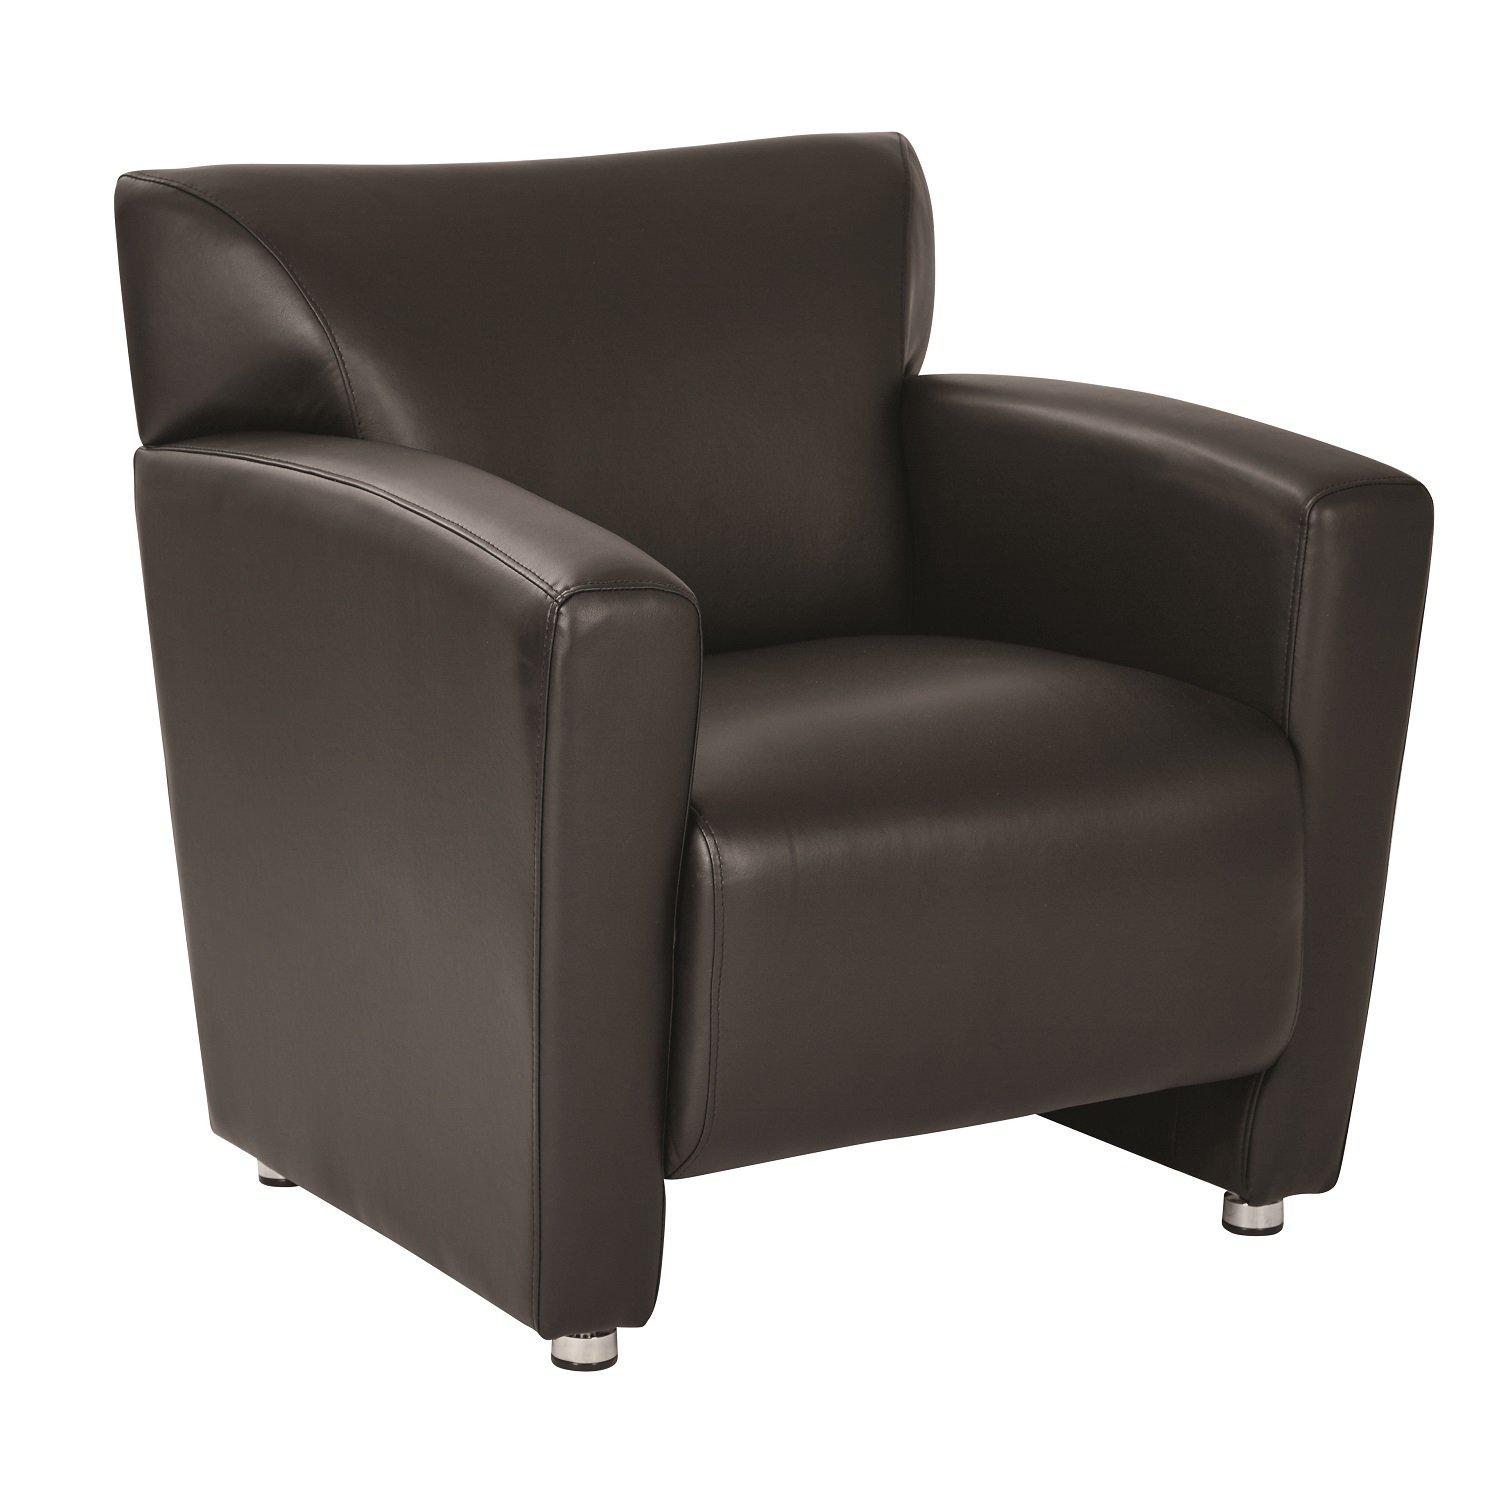 Black Faux Leather Club Chair with Silver Finish Legs